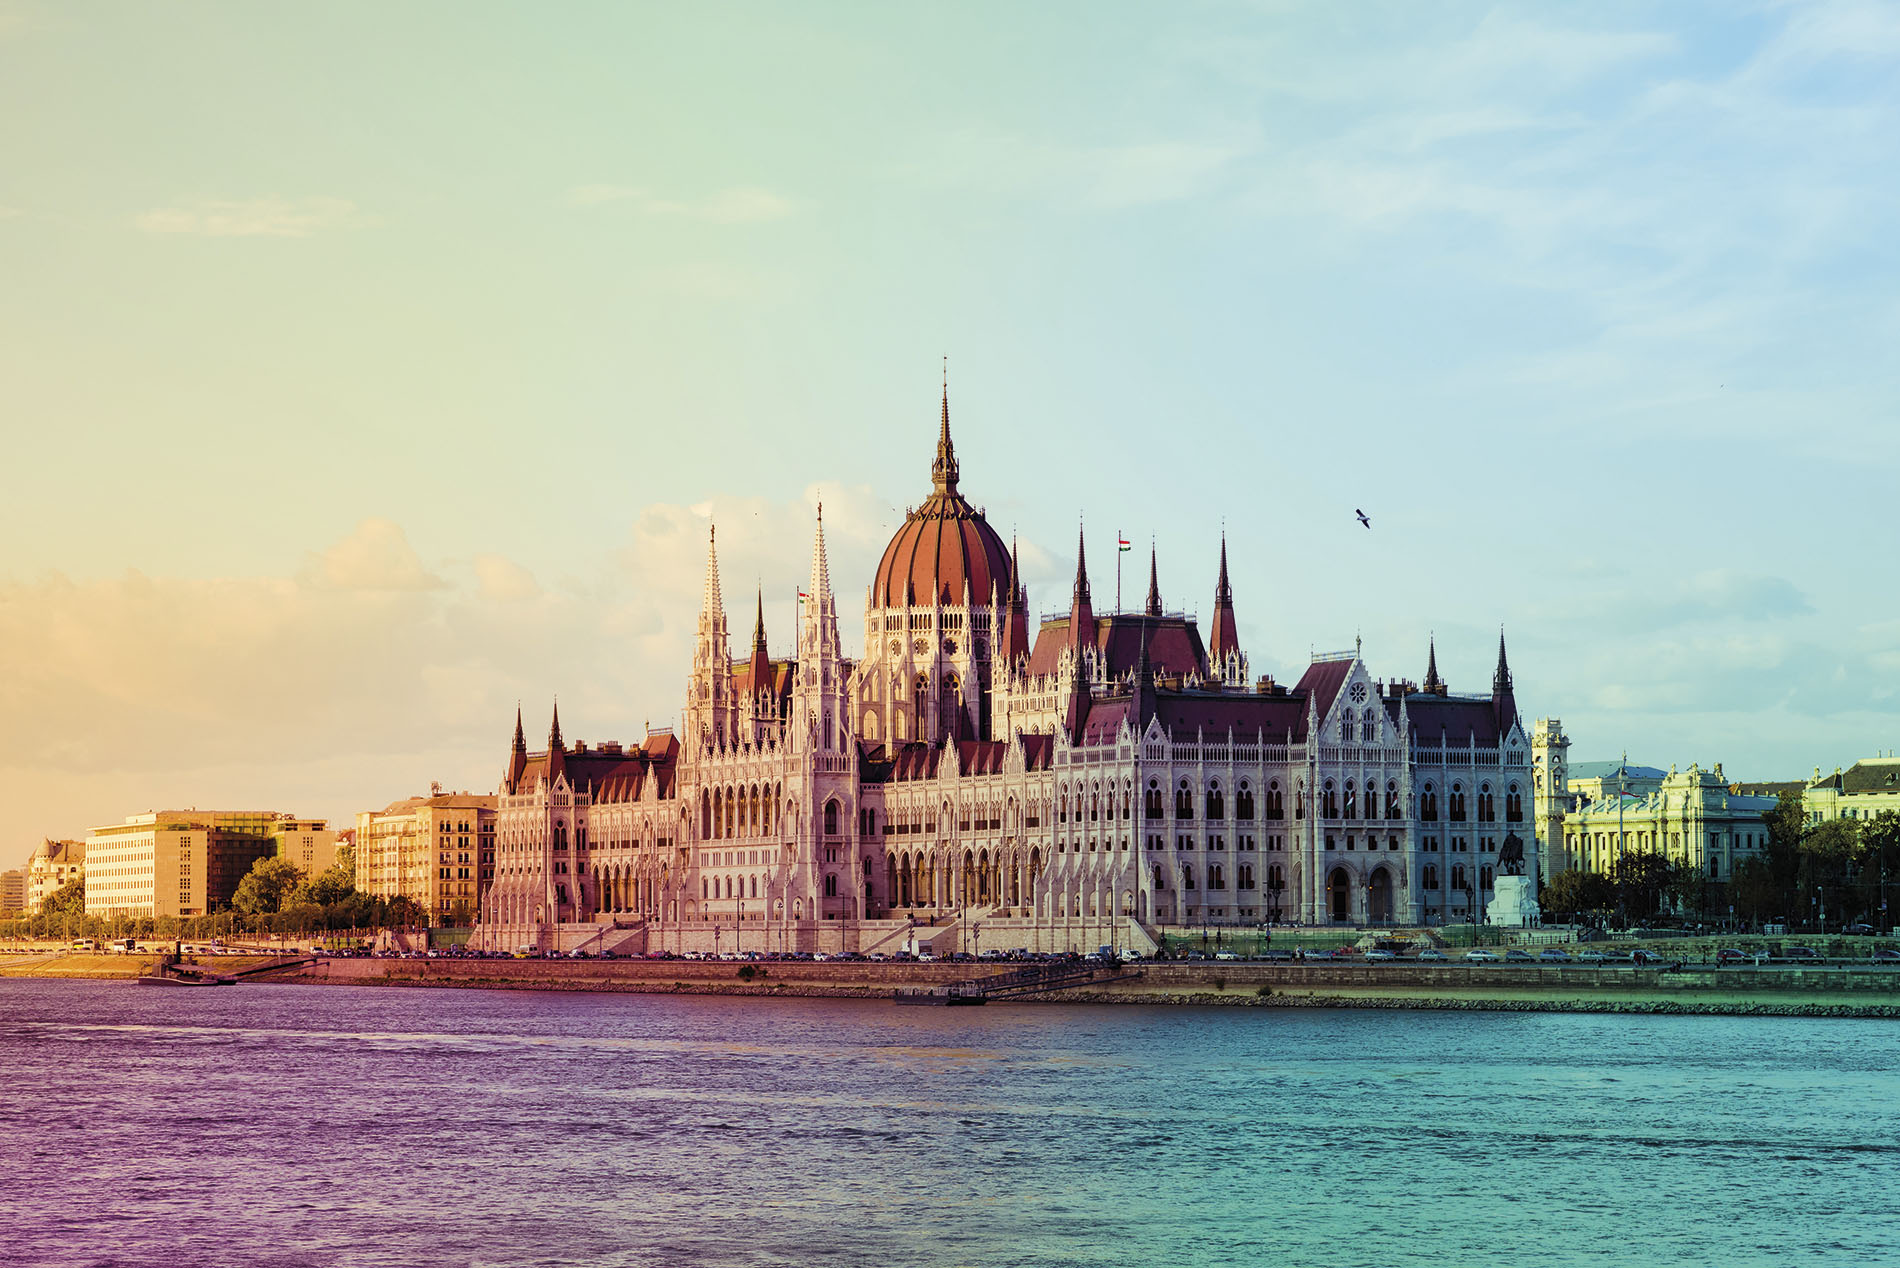 a large body of water with Hungarian Parliament Building in the background